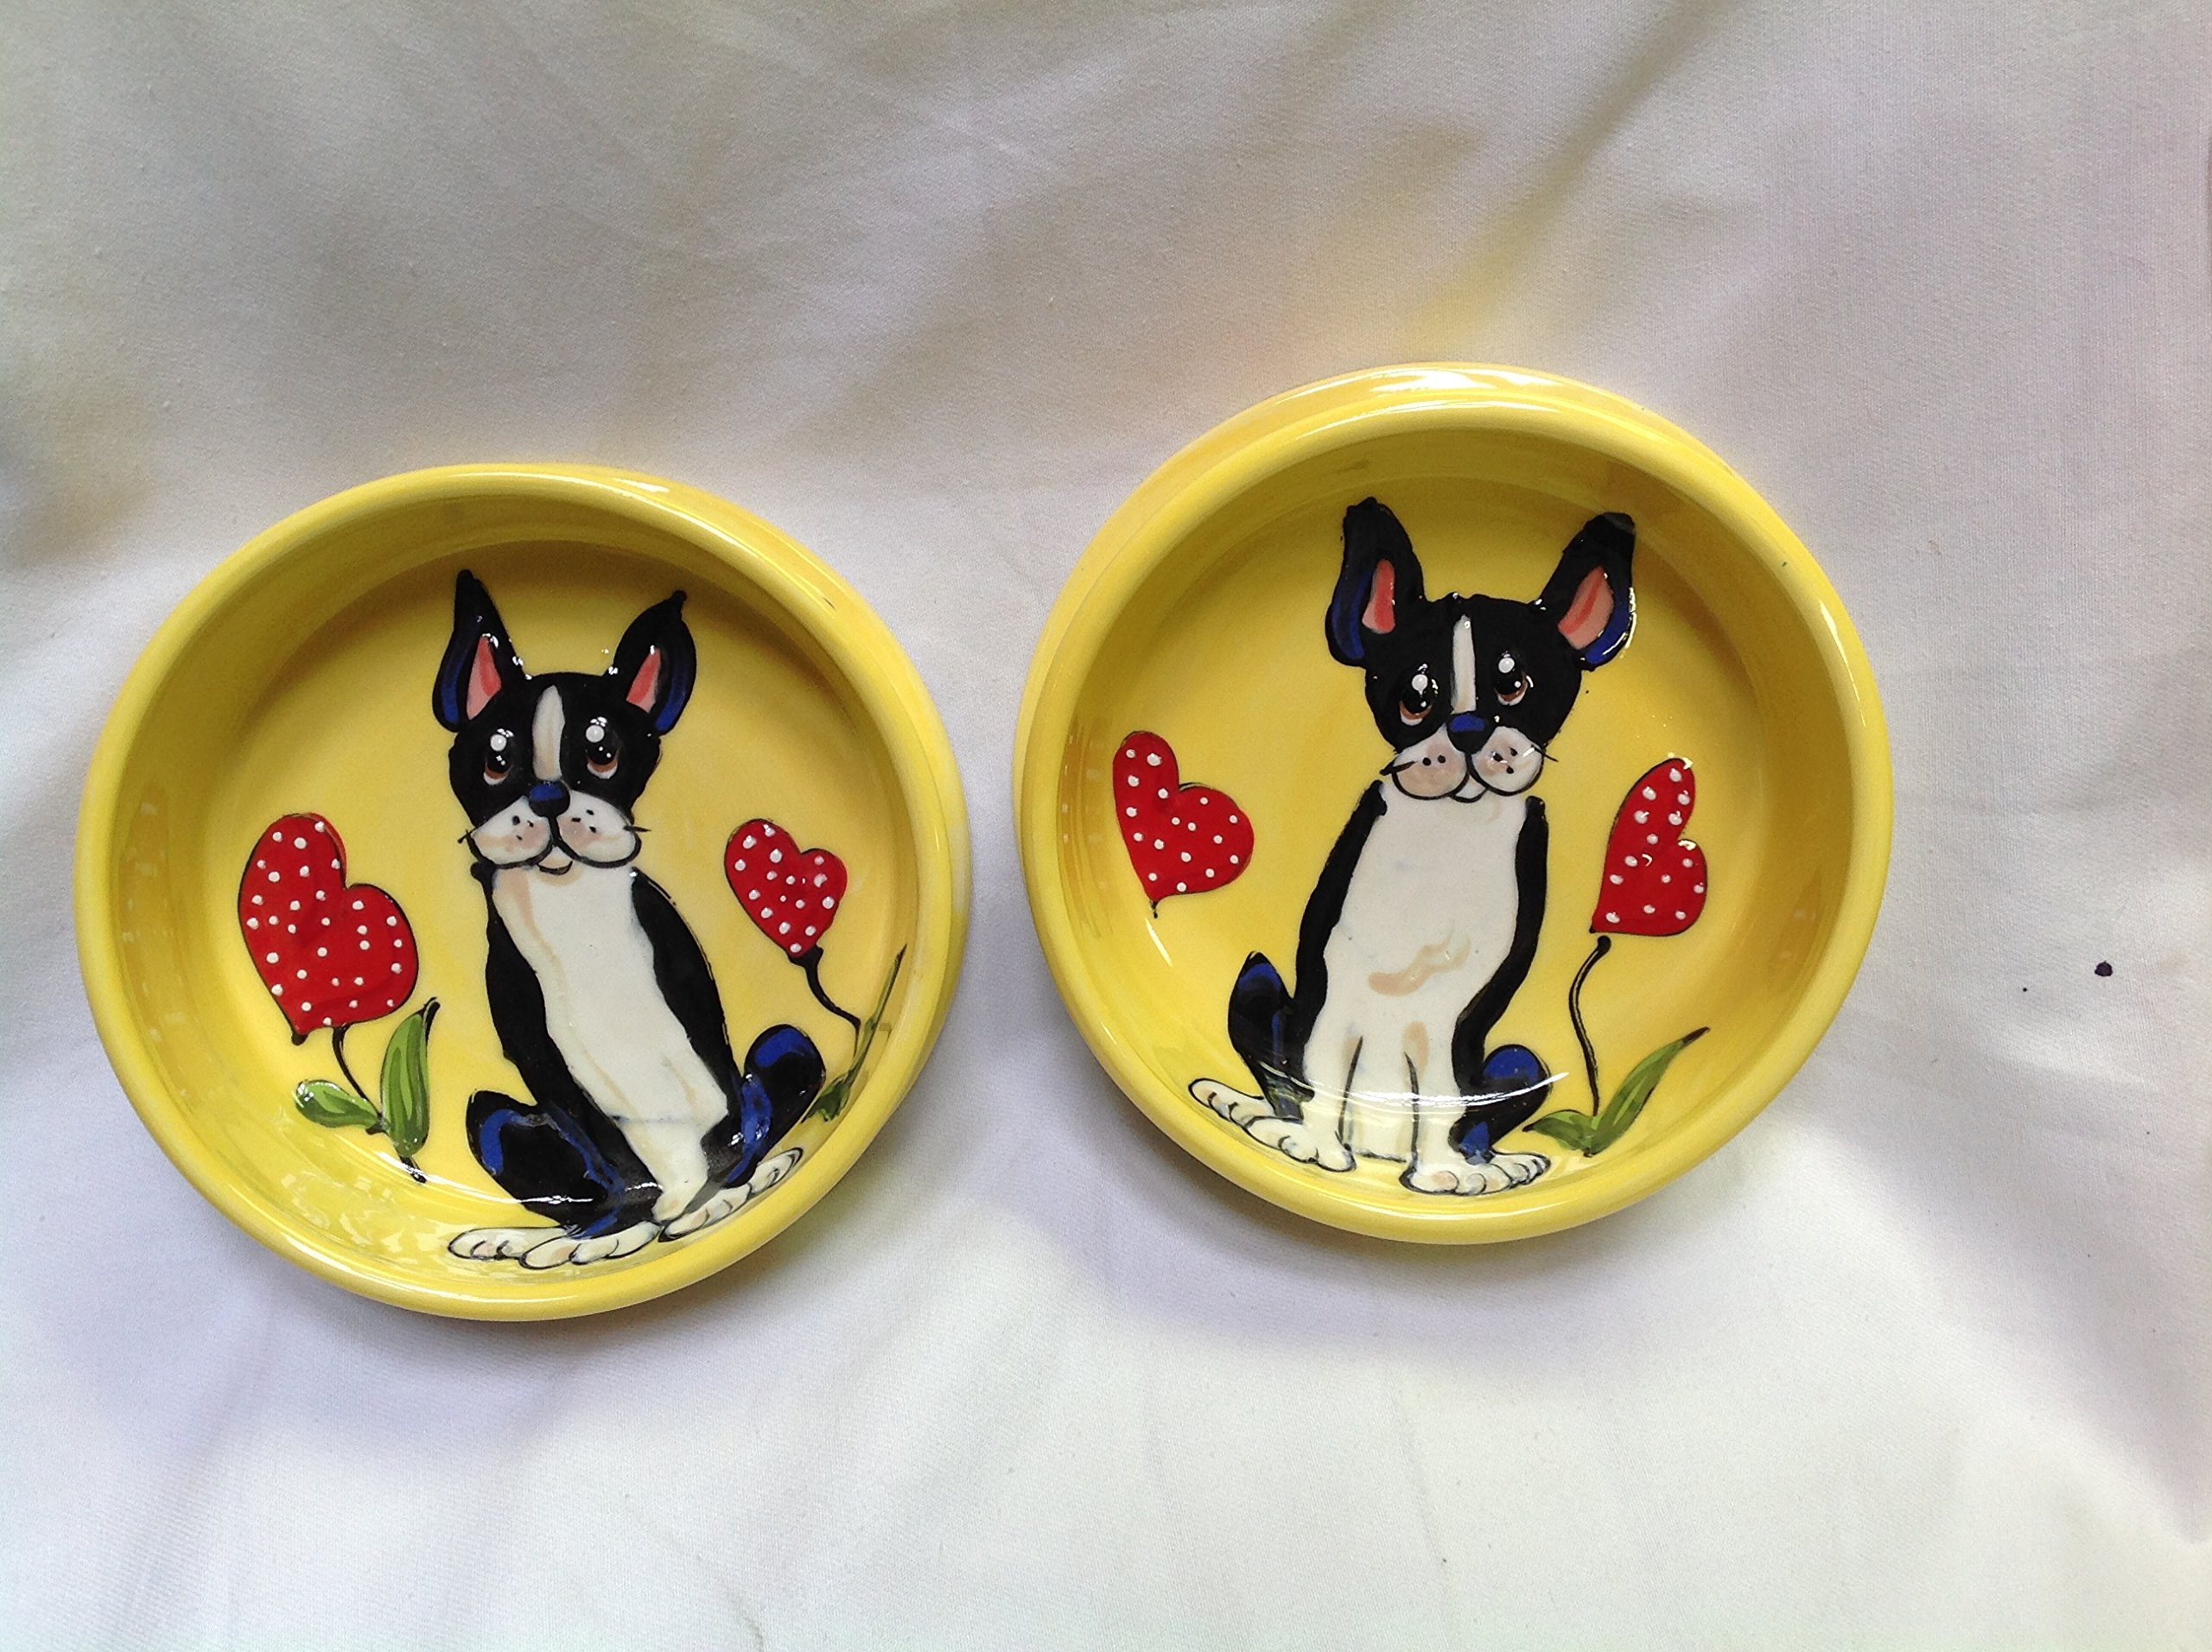 French Bulldog 8'' and 6'' Pet Bowls for Food and Water, Personalized at no Charge. Signed by Artist, Debby Carman.